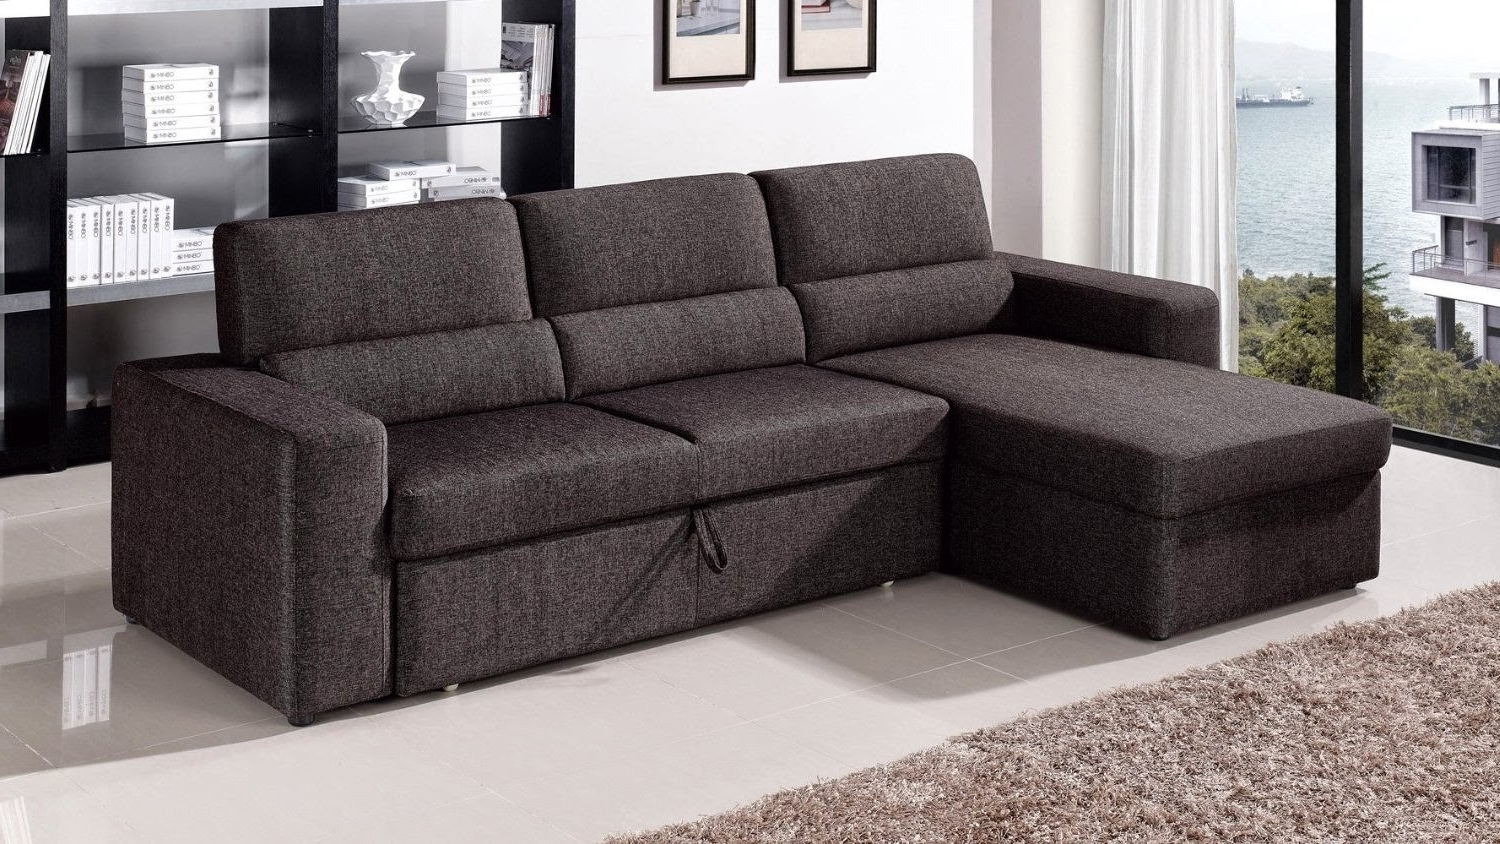 2018 Inspirational Leather Sectional Sofa Pull Out – Mediasupload Intended For Sectional Sofas With Queen Size Sleeper (View 1 of 20)